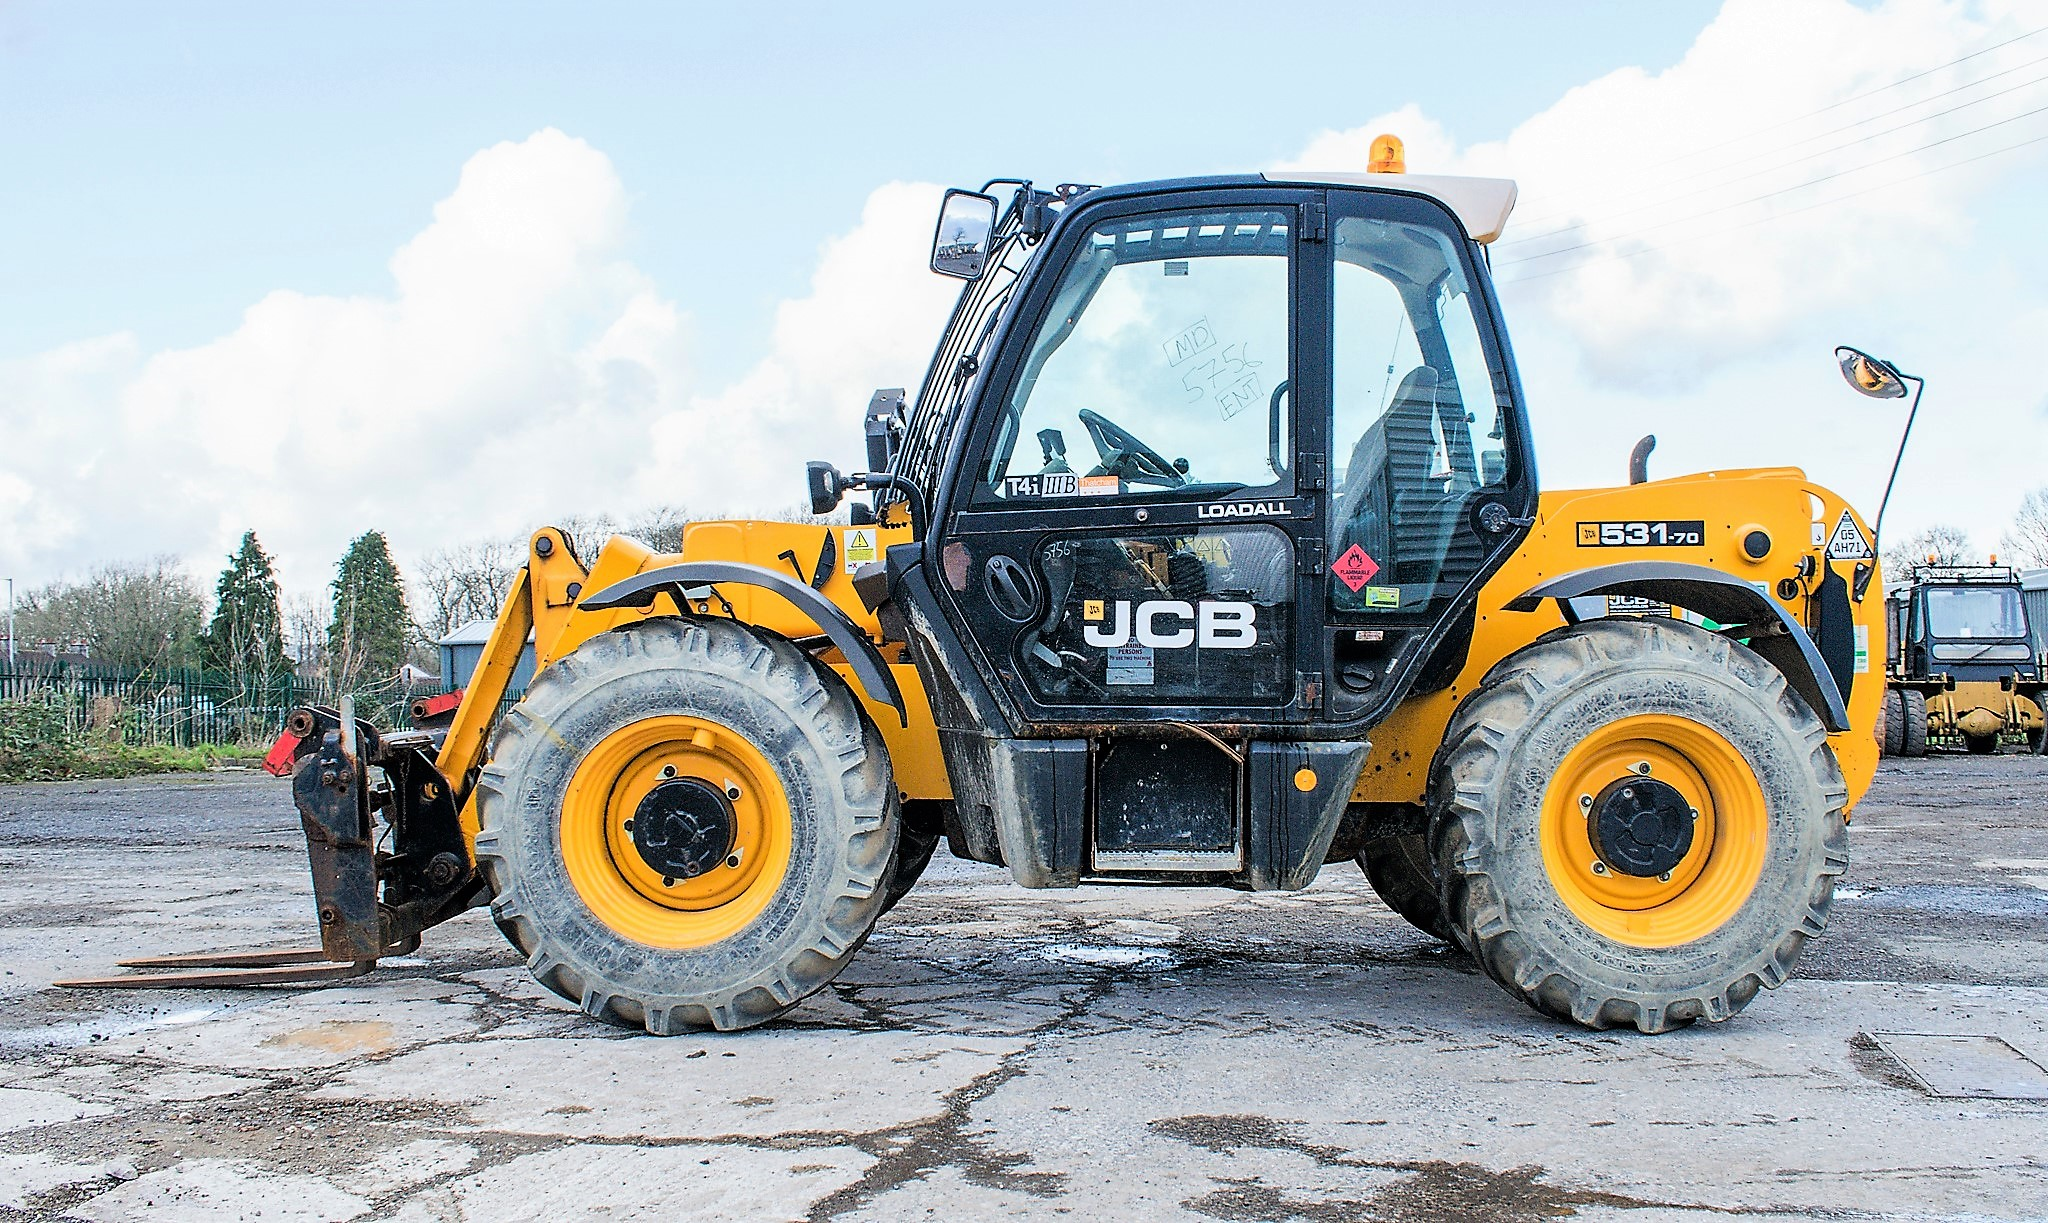 JCB 531-70 7 metre telescopic handler Year: 2013 S/N: 2176575 Reg No: MX13 PHY Recorded Hours: - Image 7 of 19